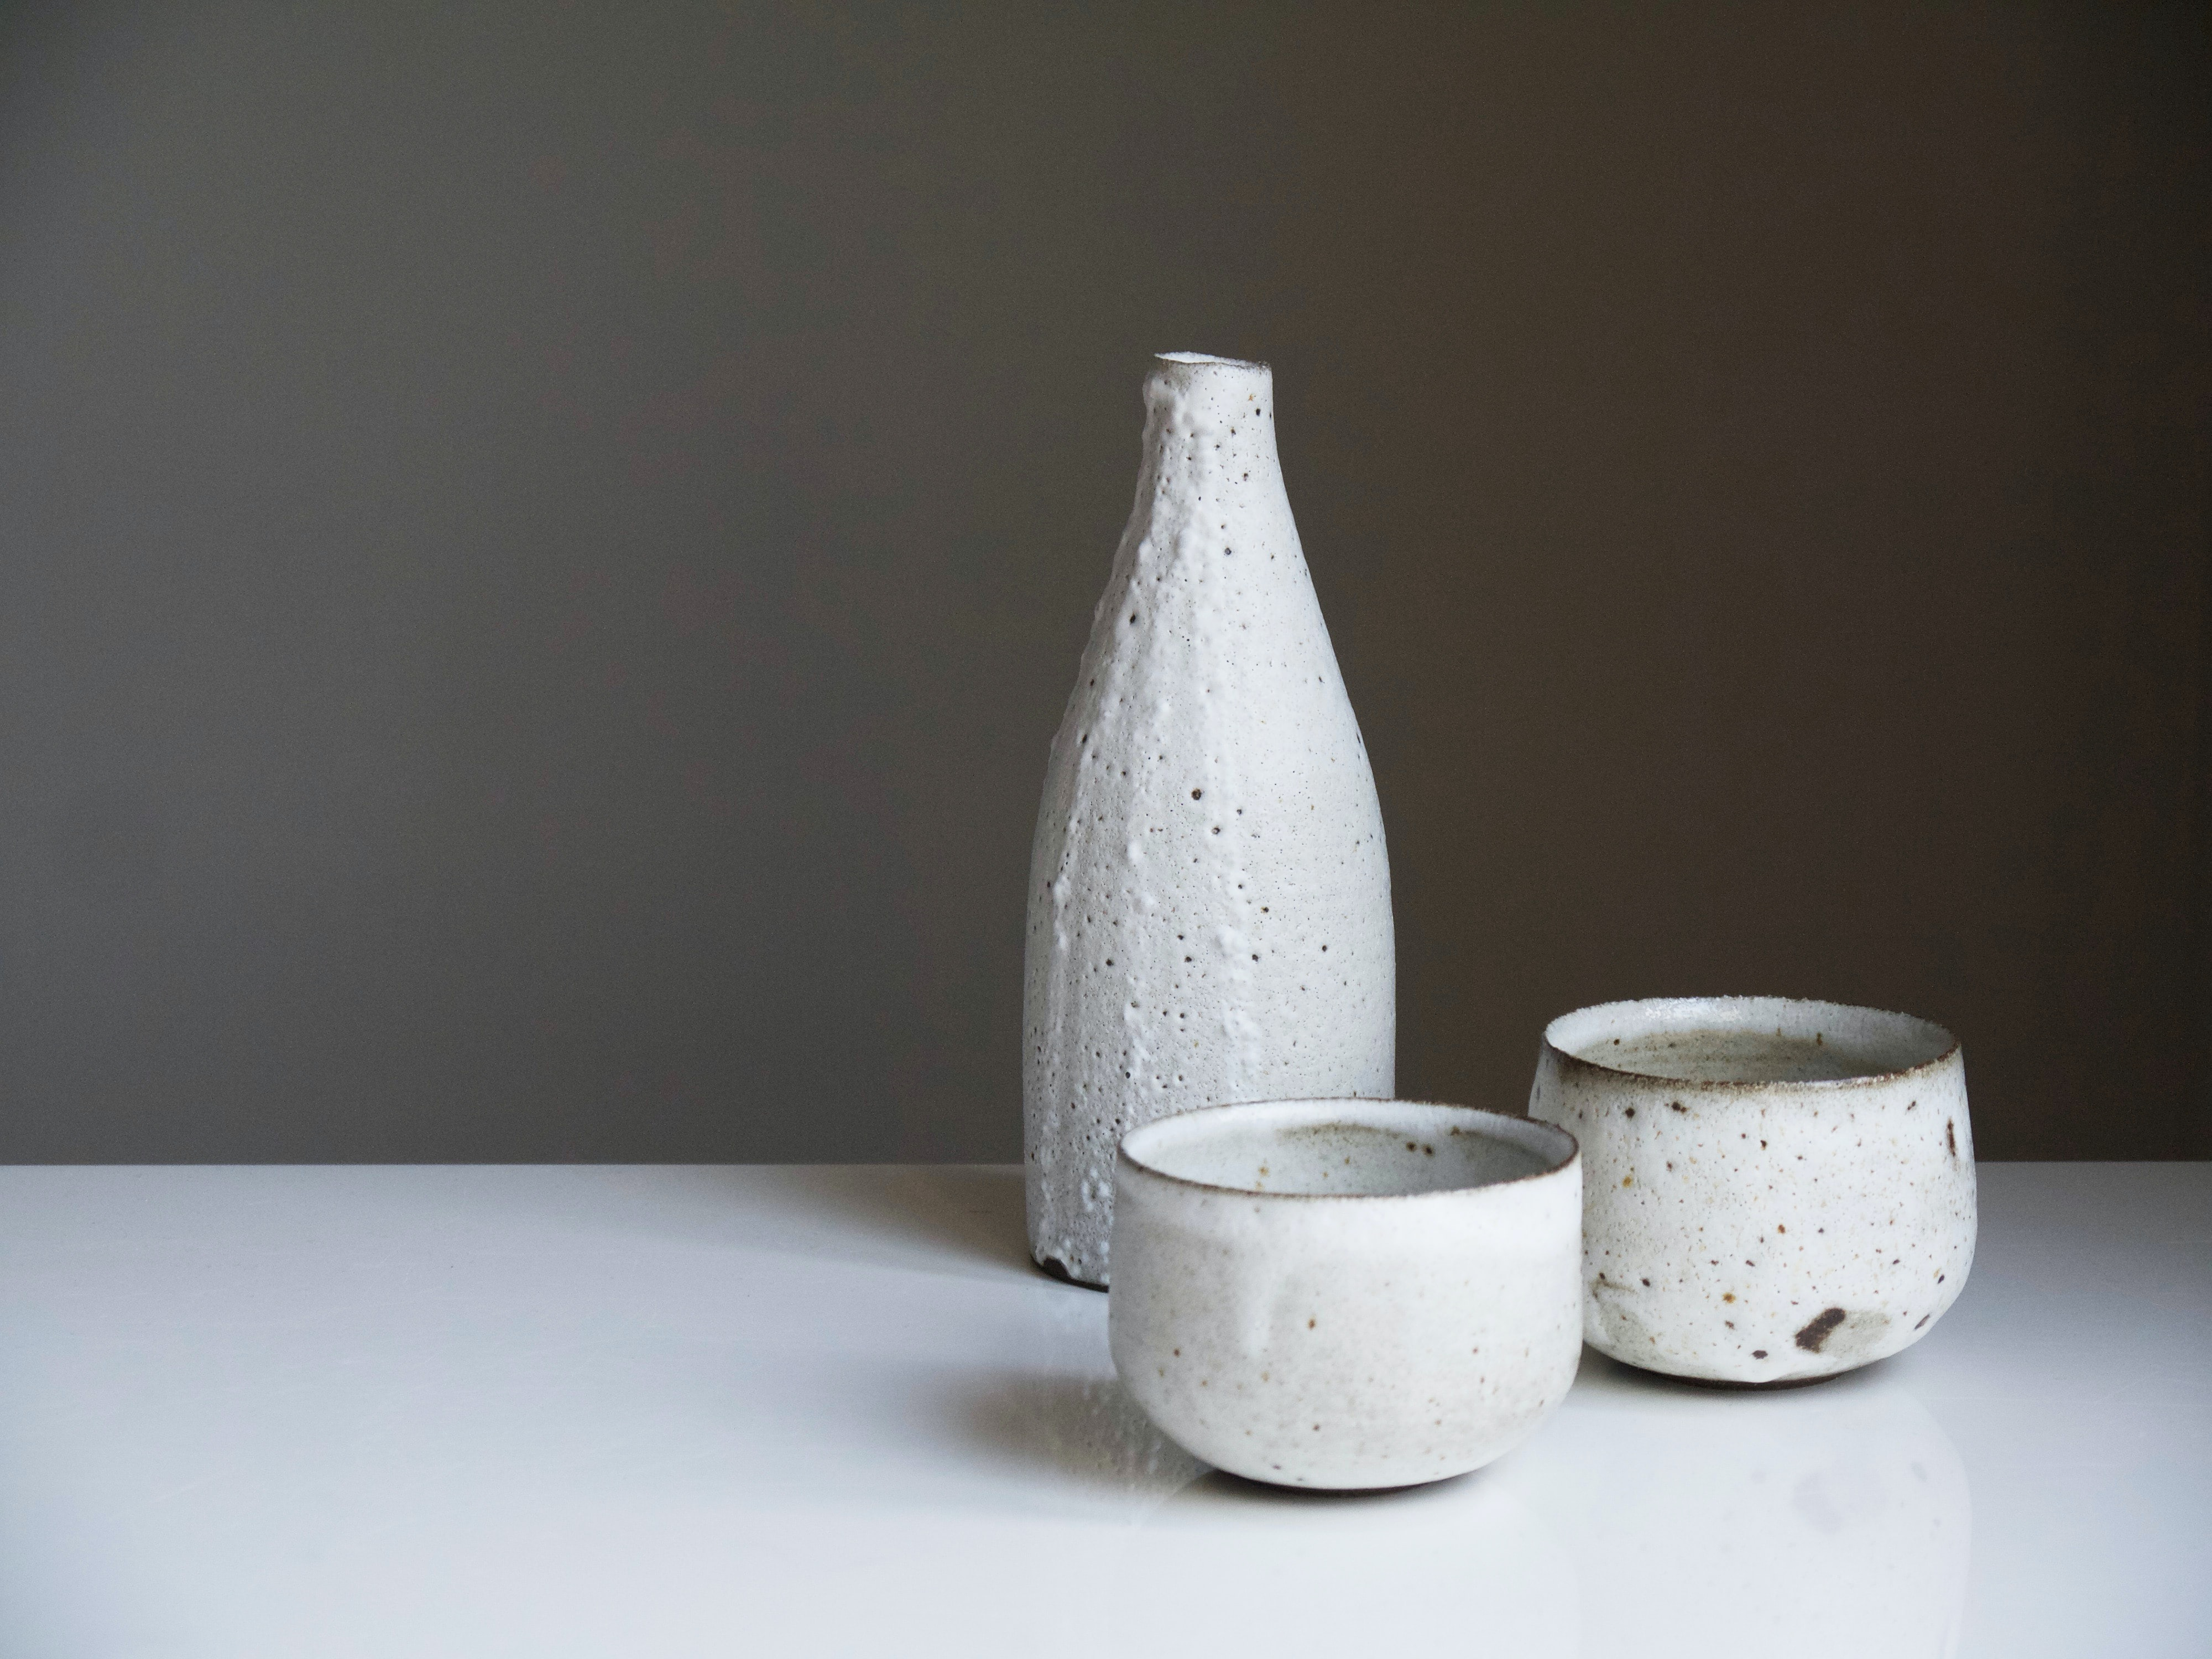 two white ceramic bowls and bottle on white table